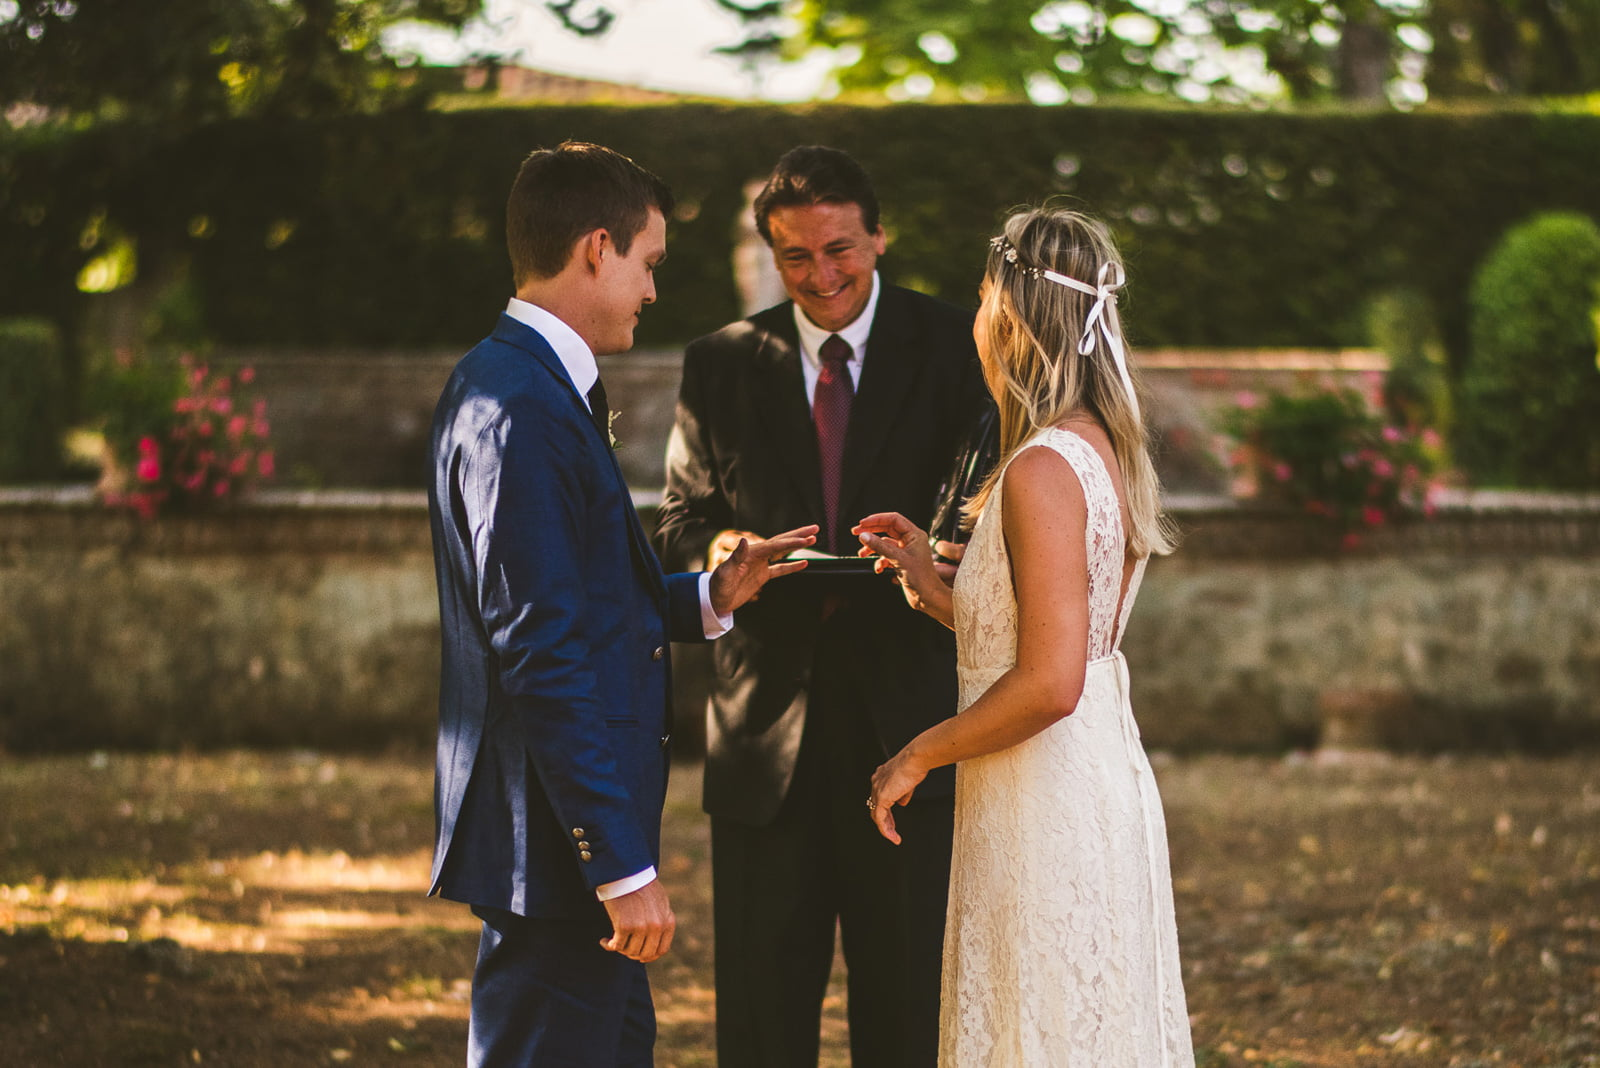 A+L Wedding at Montechiaro, Siena by Federico Pannacci 58